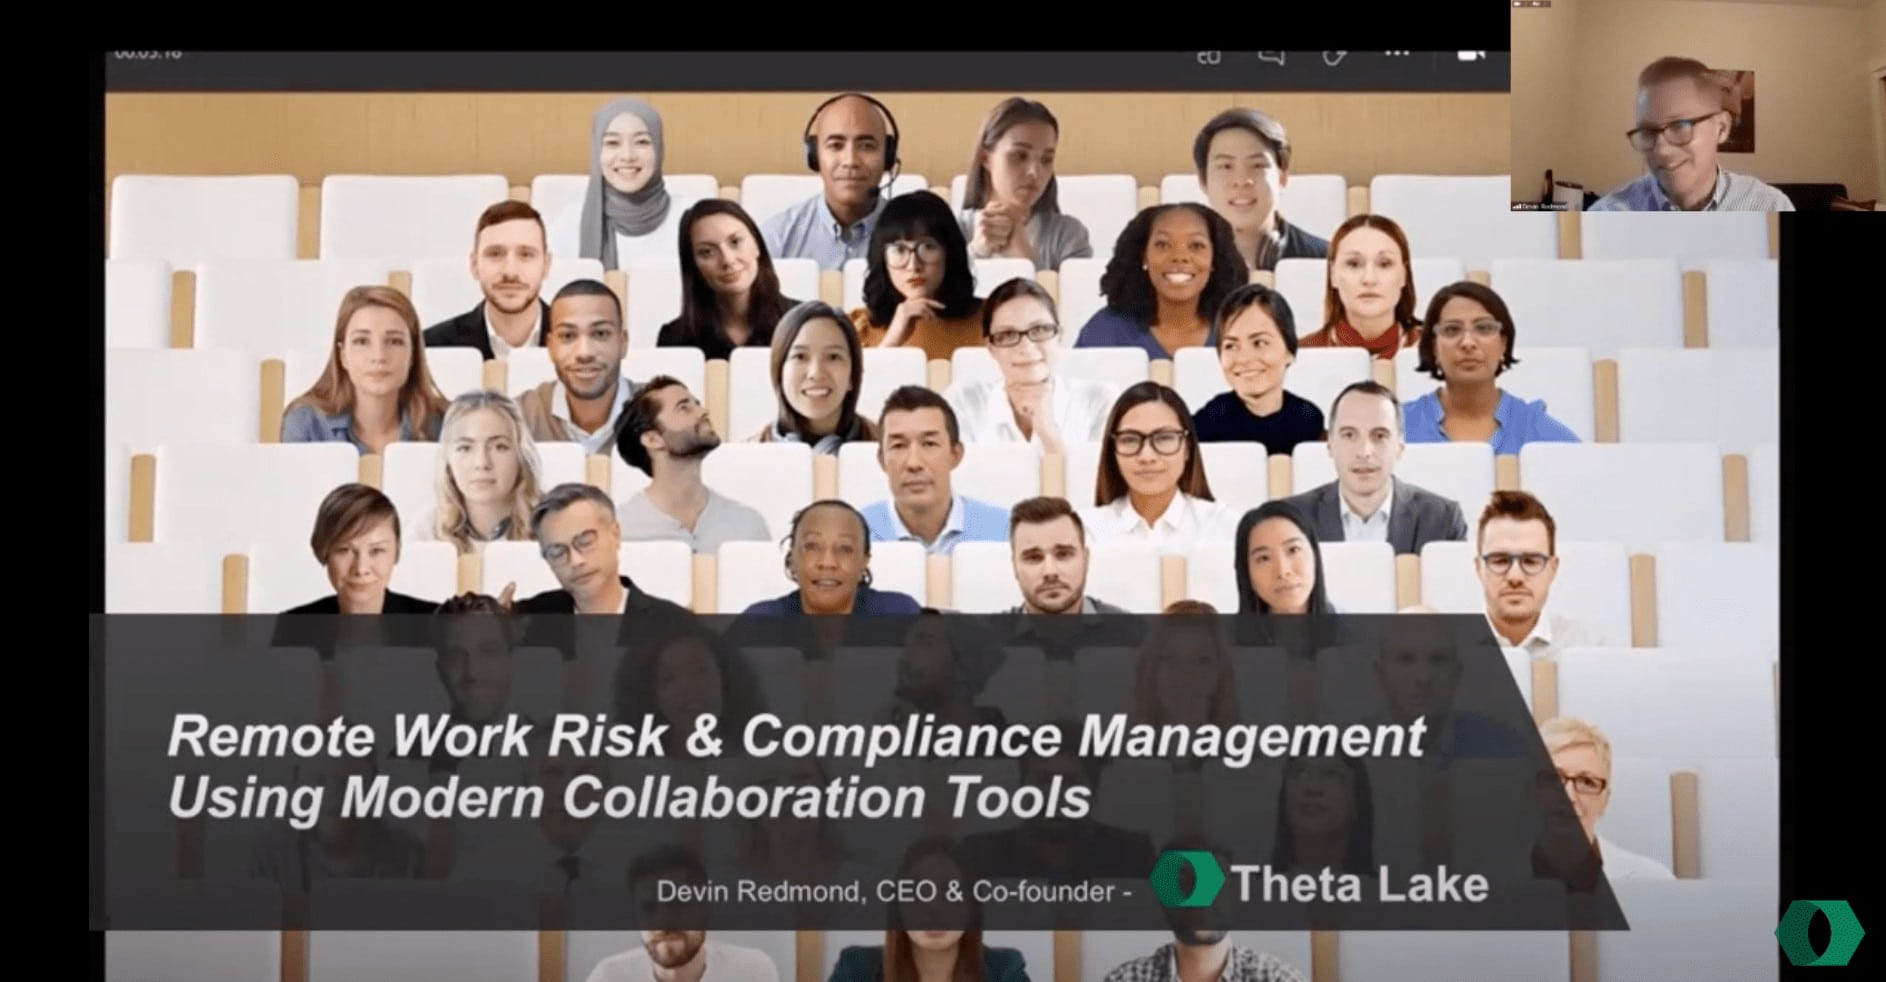 webinar banner: Remote work risk and compliance management using modern collaboration tools.